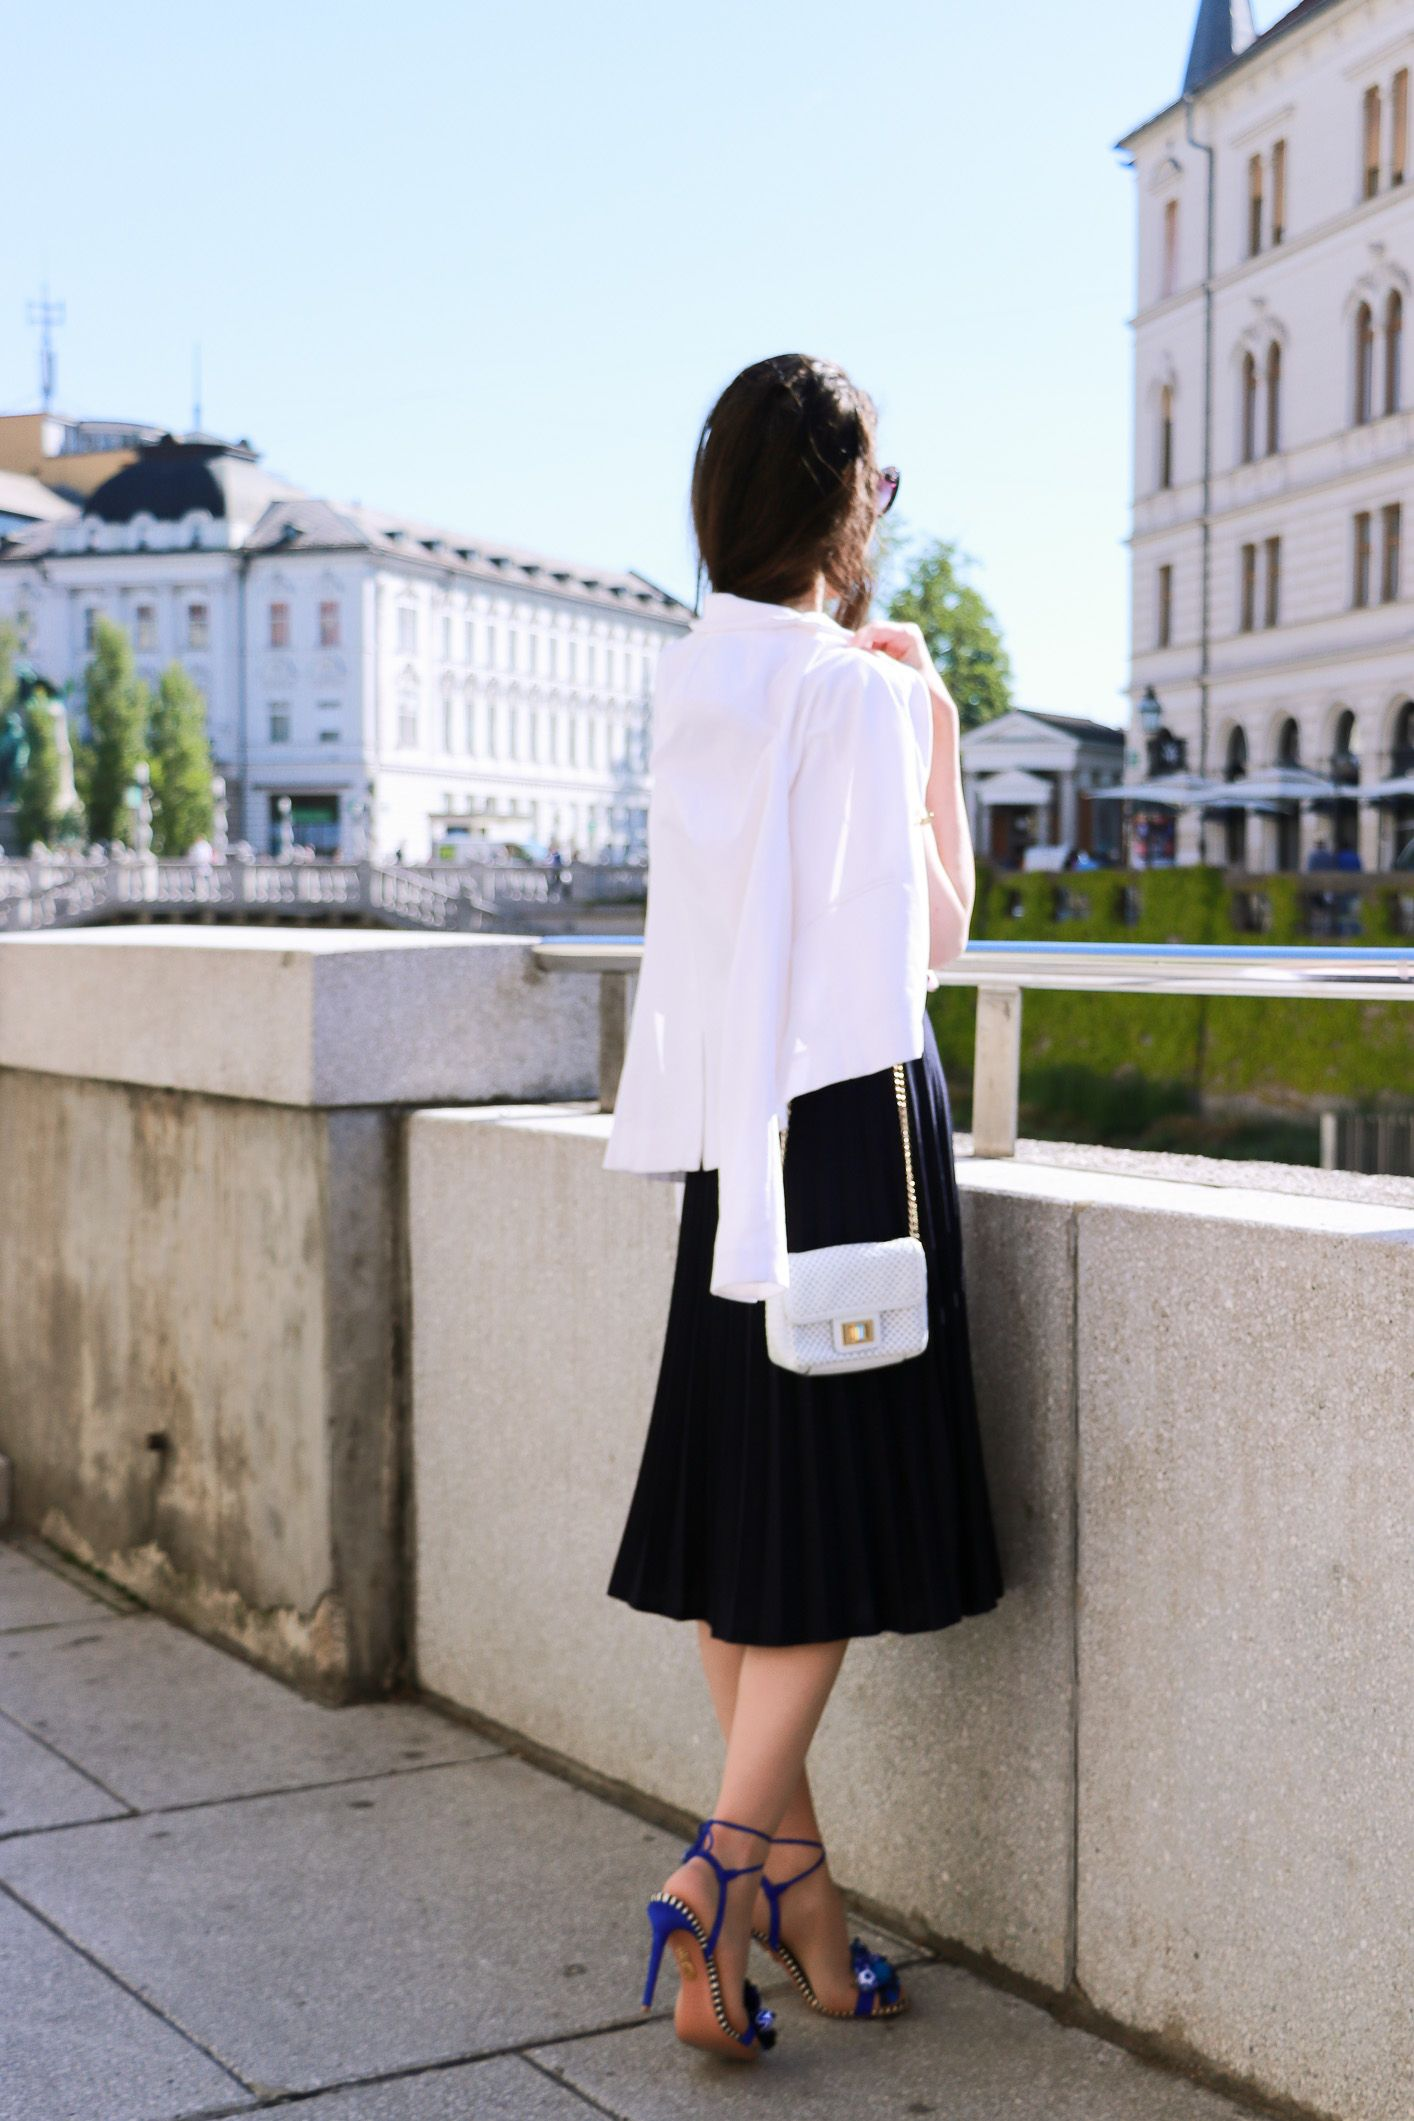 Fashion blogger Veronika Lipar of Brunette From Wall Street on stealing the vintage midi plissé skirt from her mother